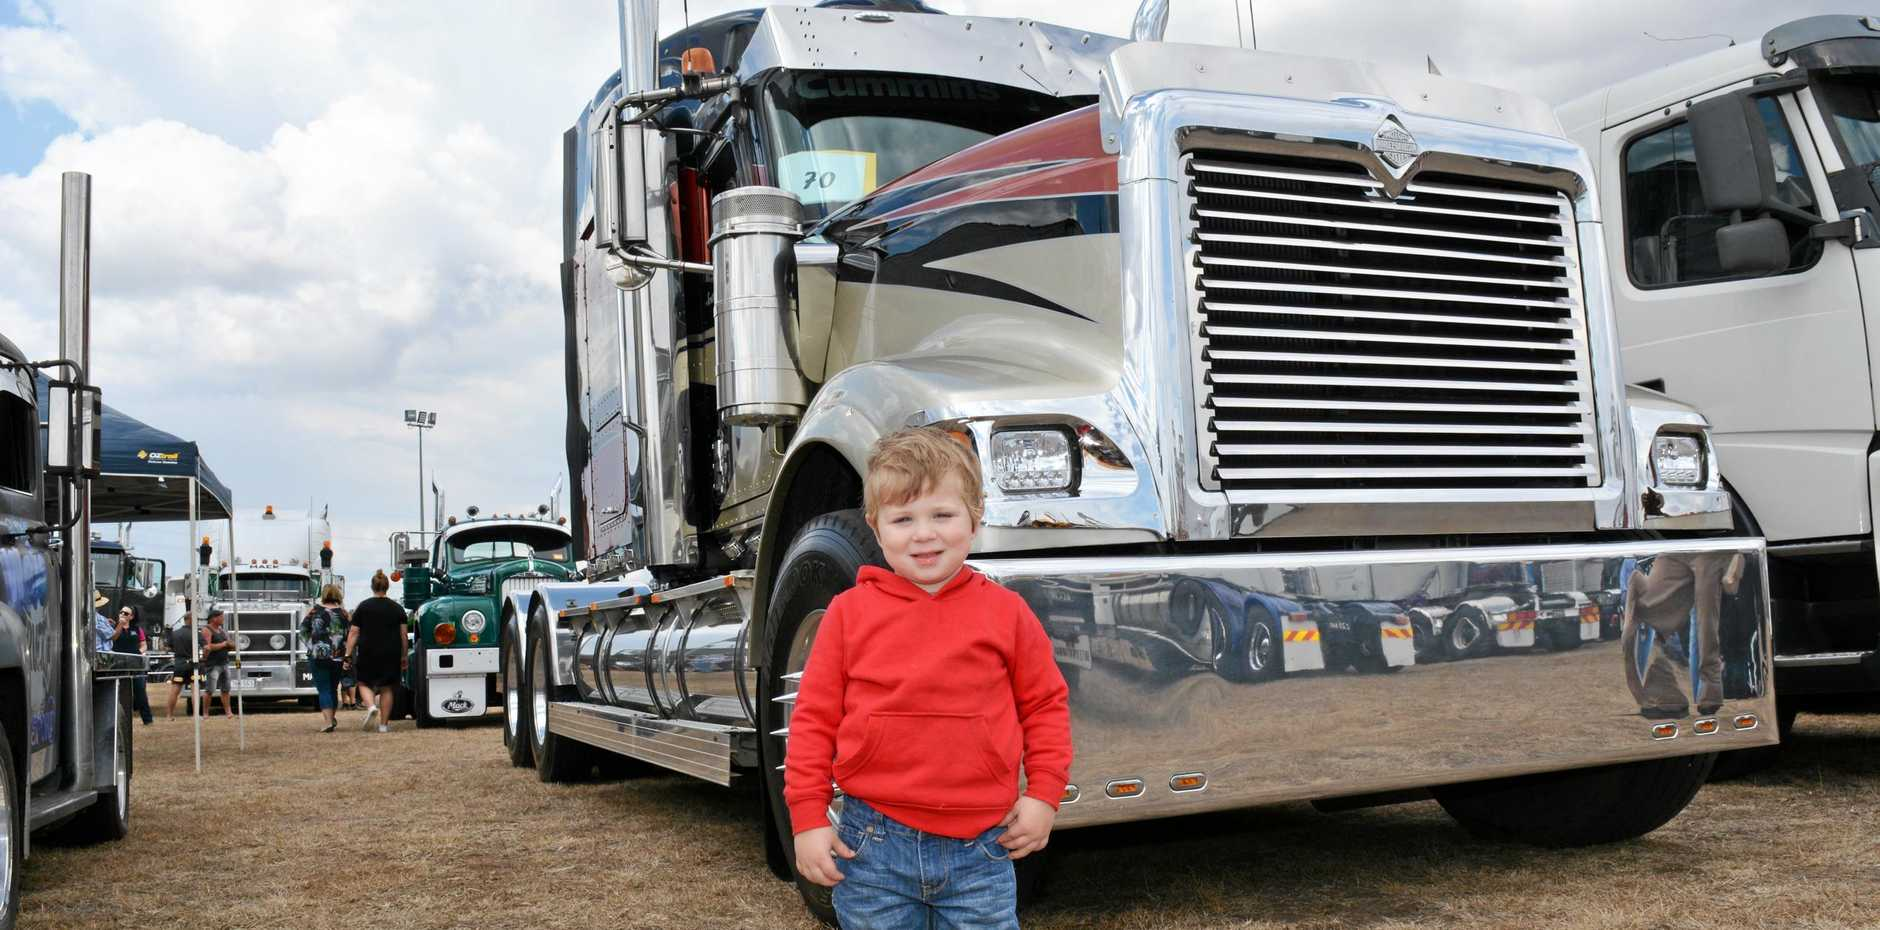 LOWOOD TRUCK SHOW- Mitchell Turner from Ceder grove